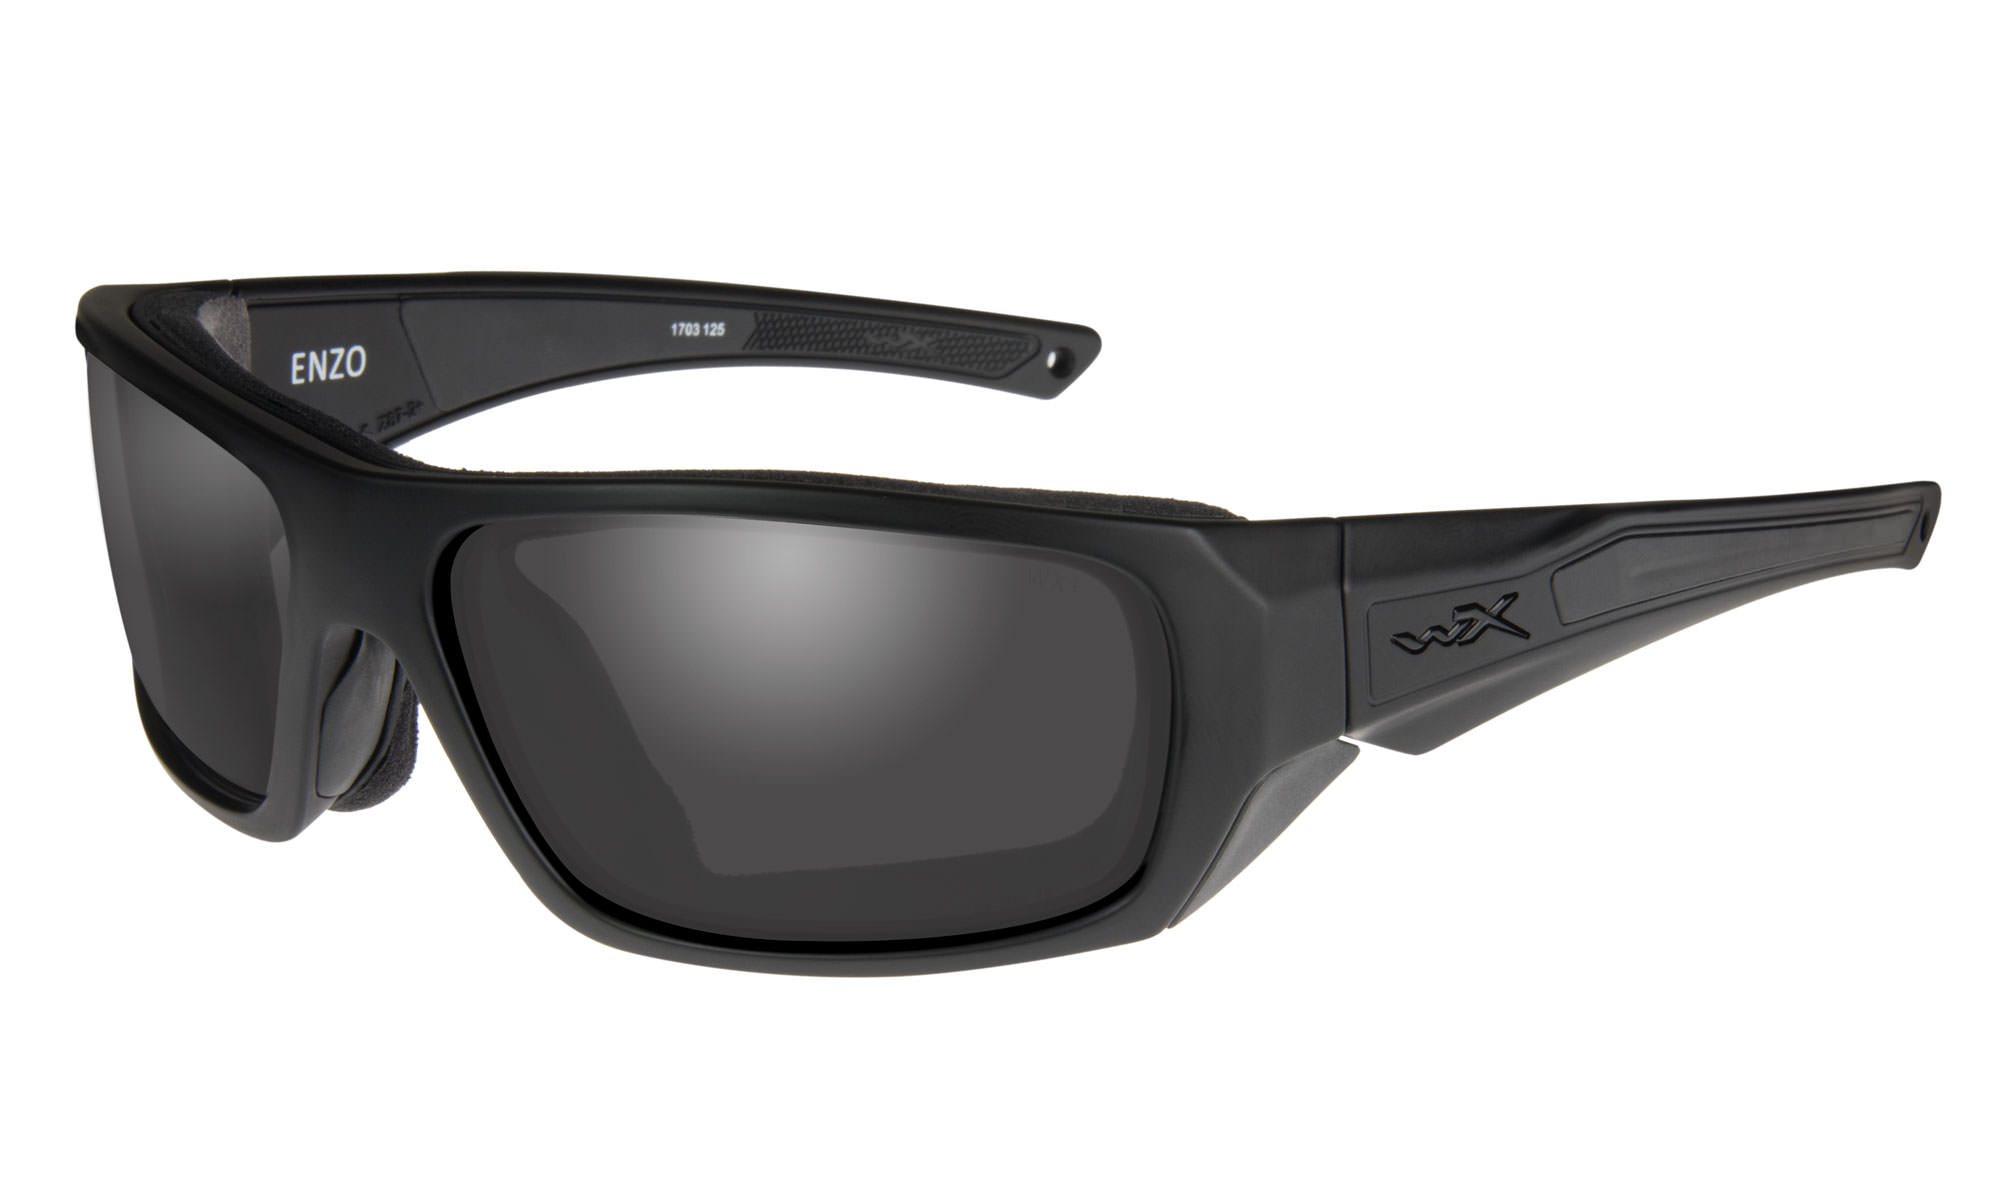 0510c8372e46 Wiley-X WX Enzo Matte Black with Smoke Grey Lenses | Wiley X